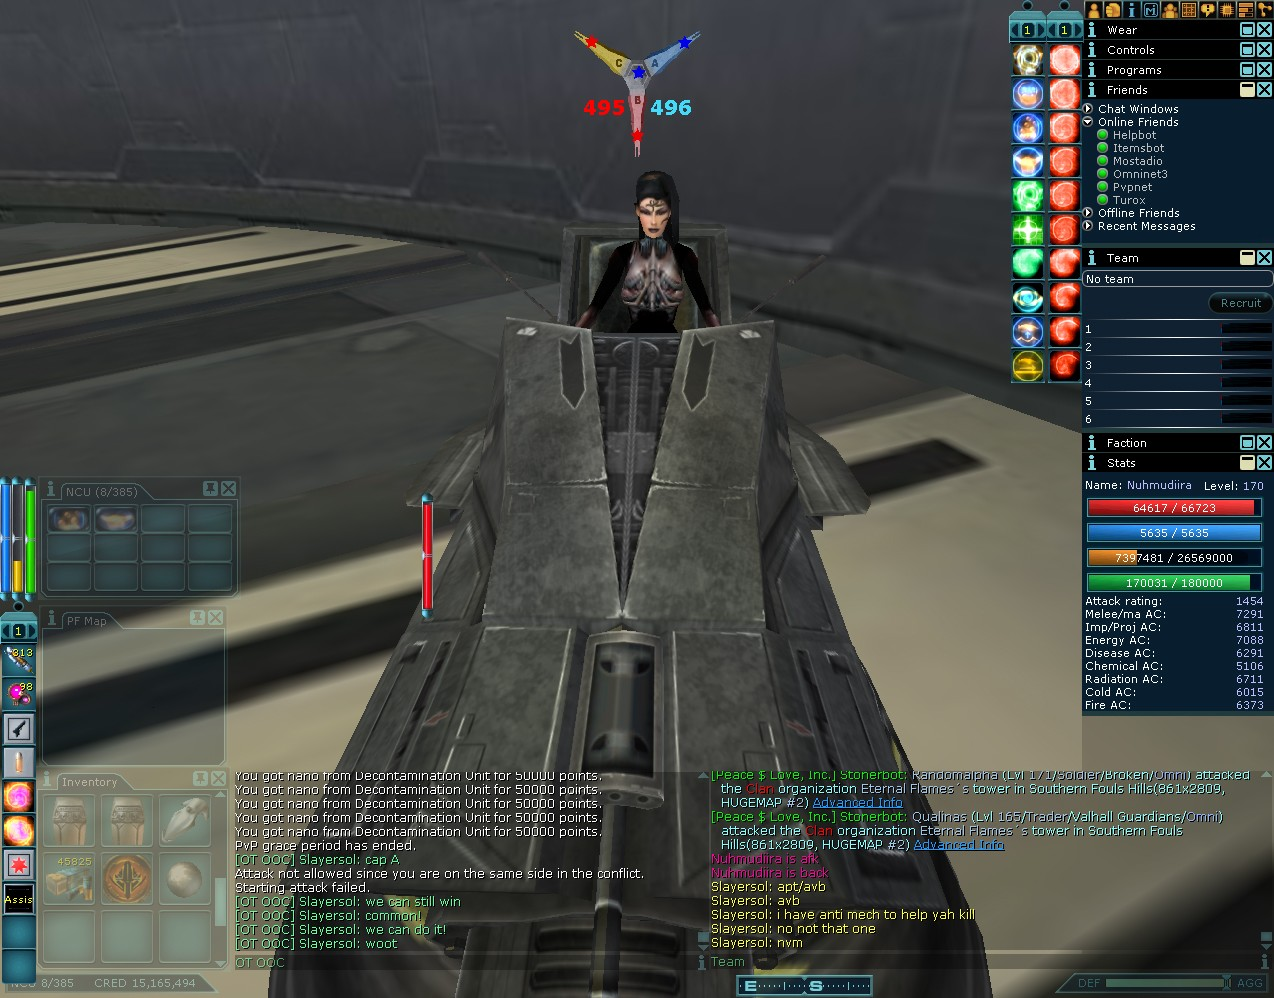 Anarchy Online - Setting up shop in a Mech.